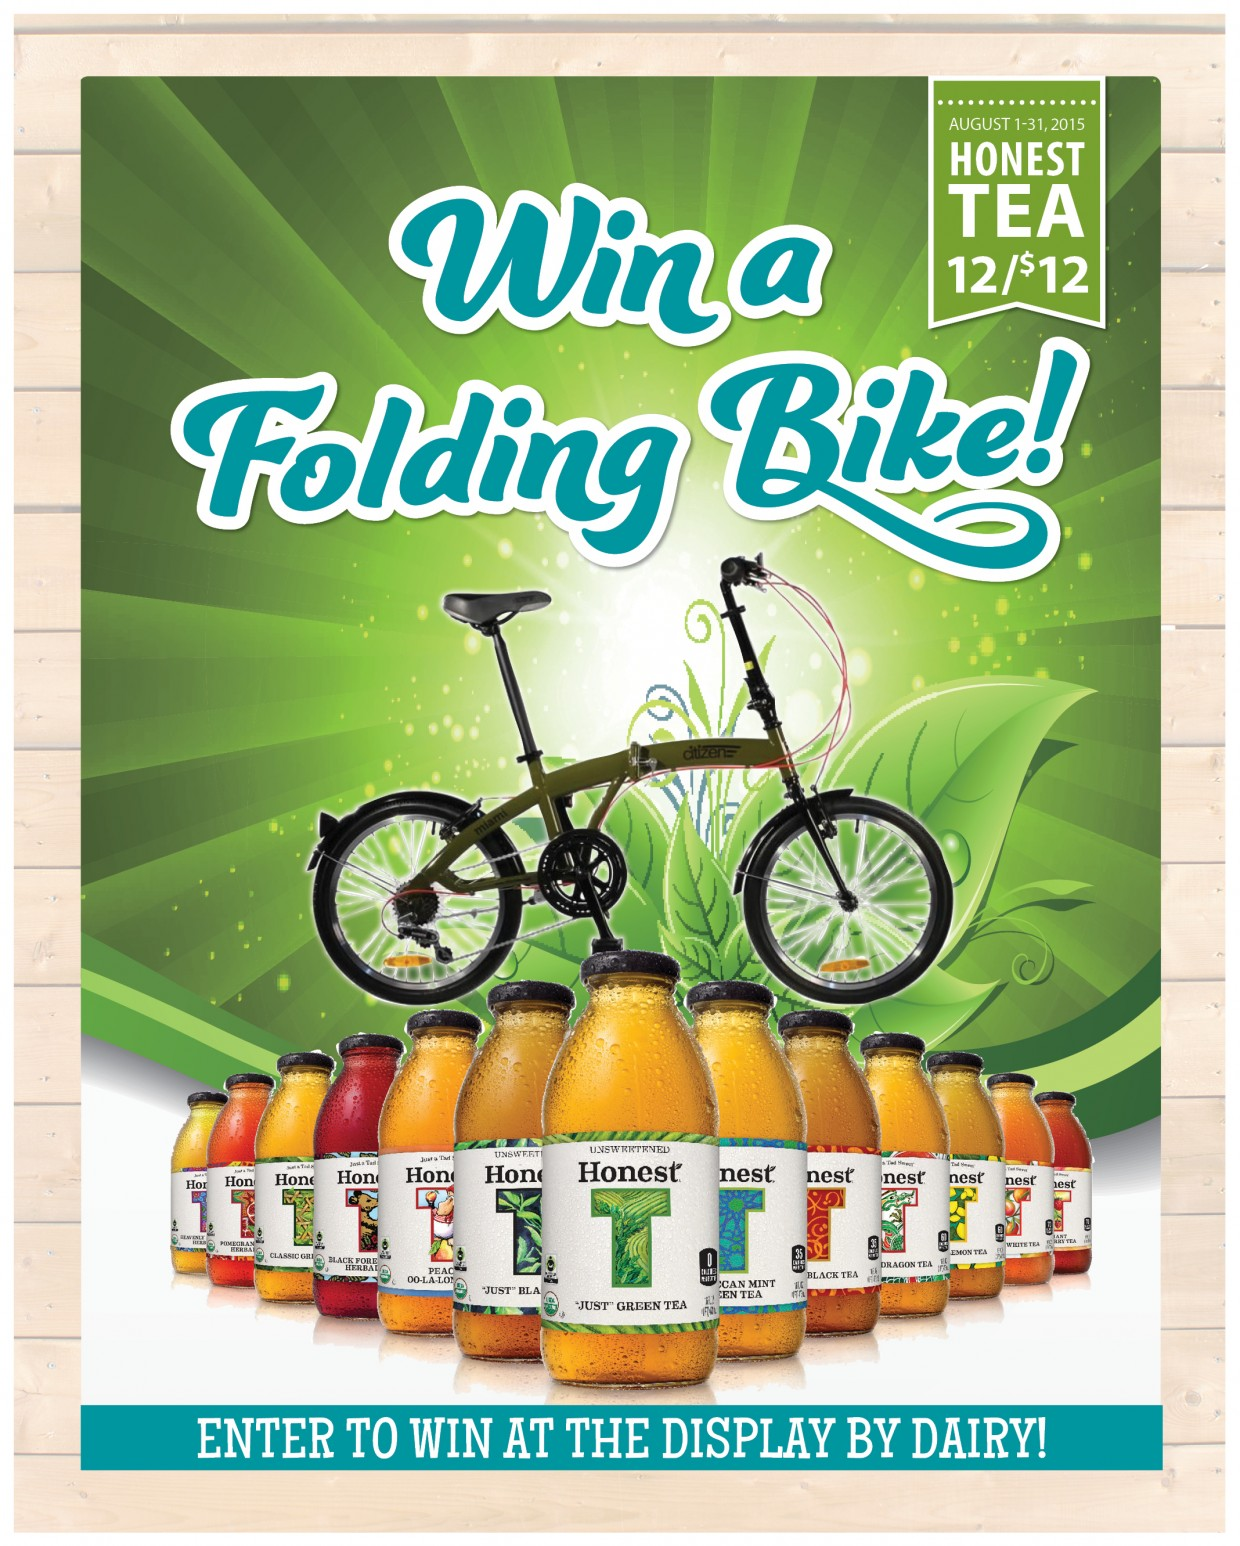 Refresh Your Ride: Win a Citizen Folding Bike from Honest Tea!